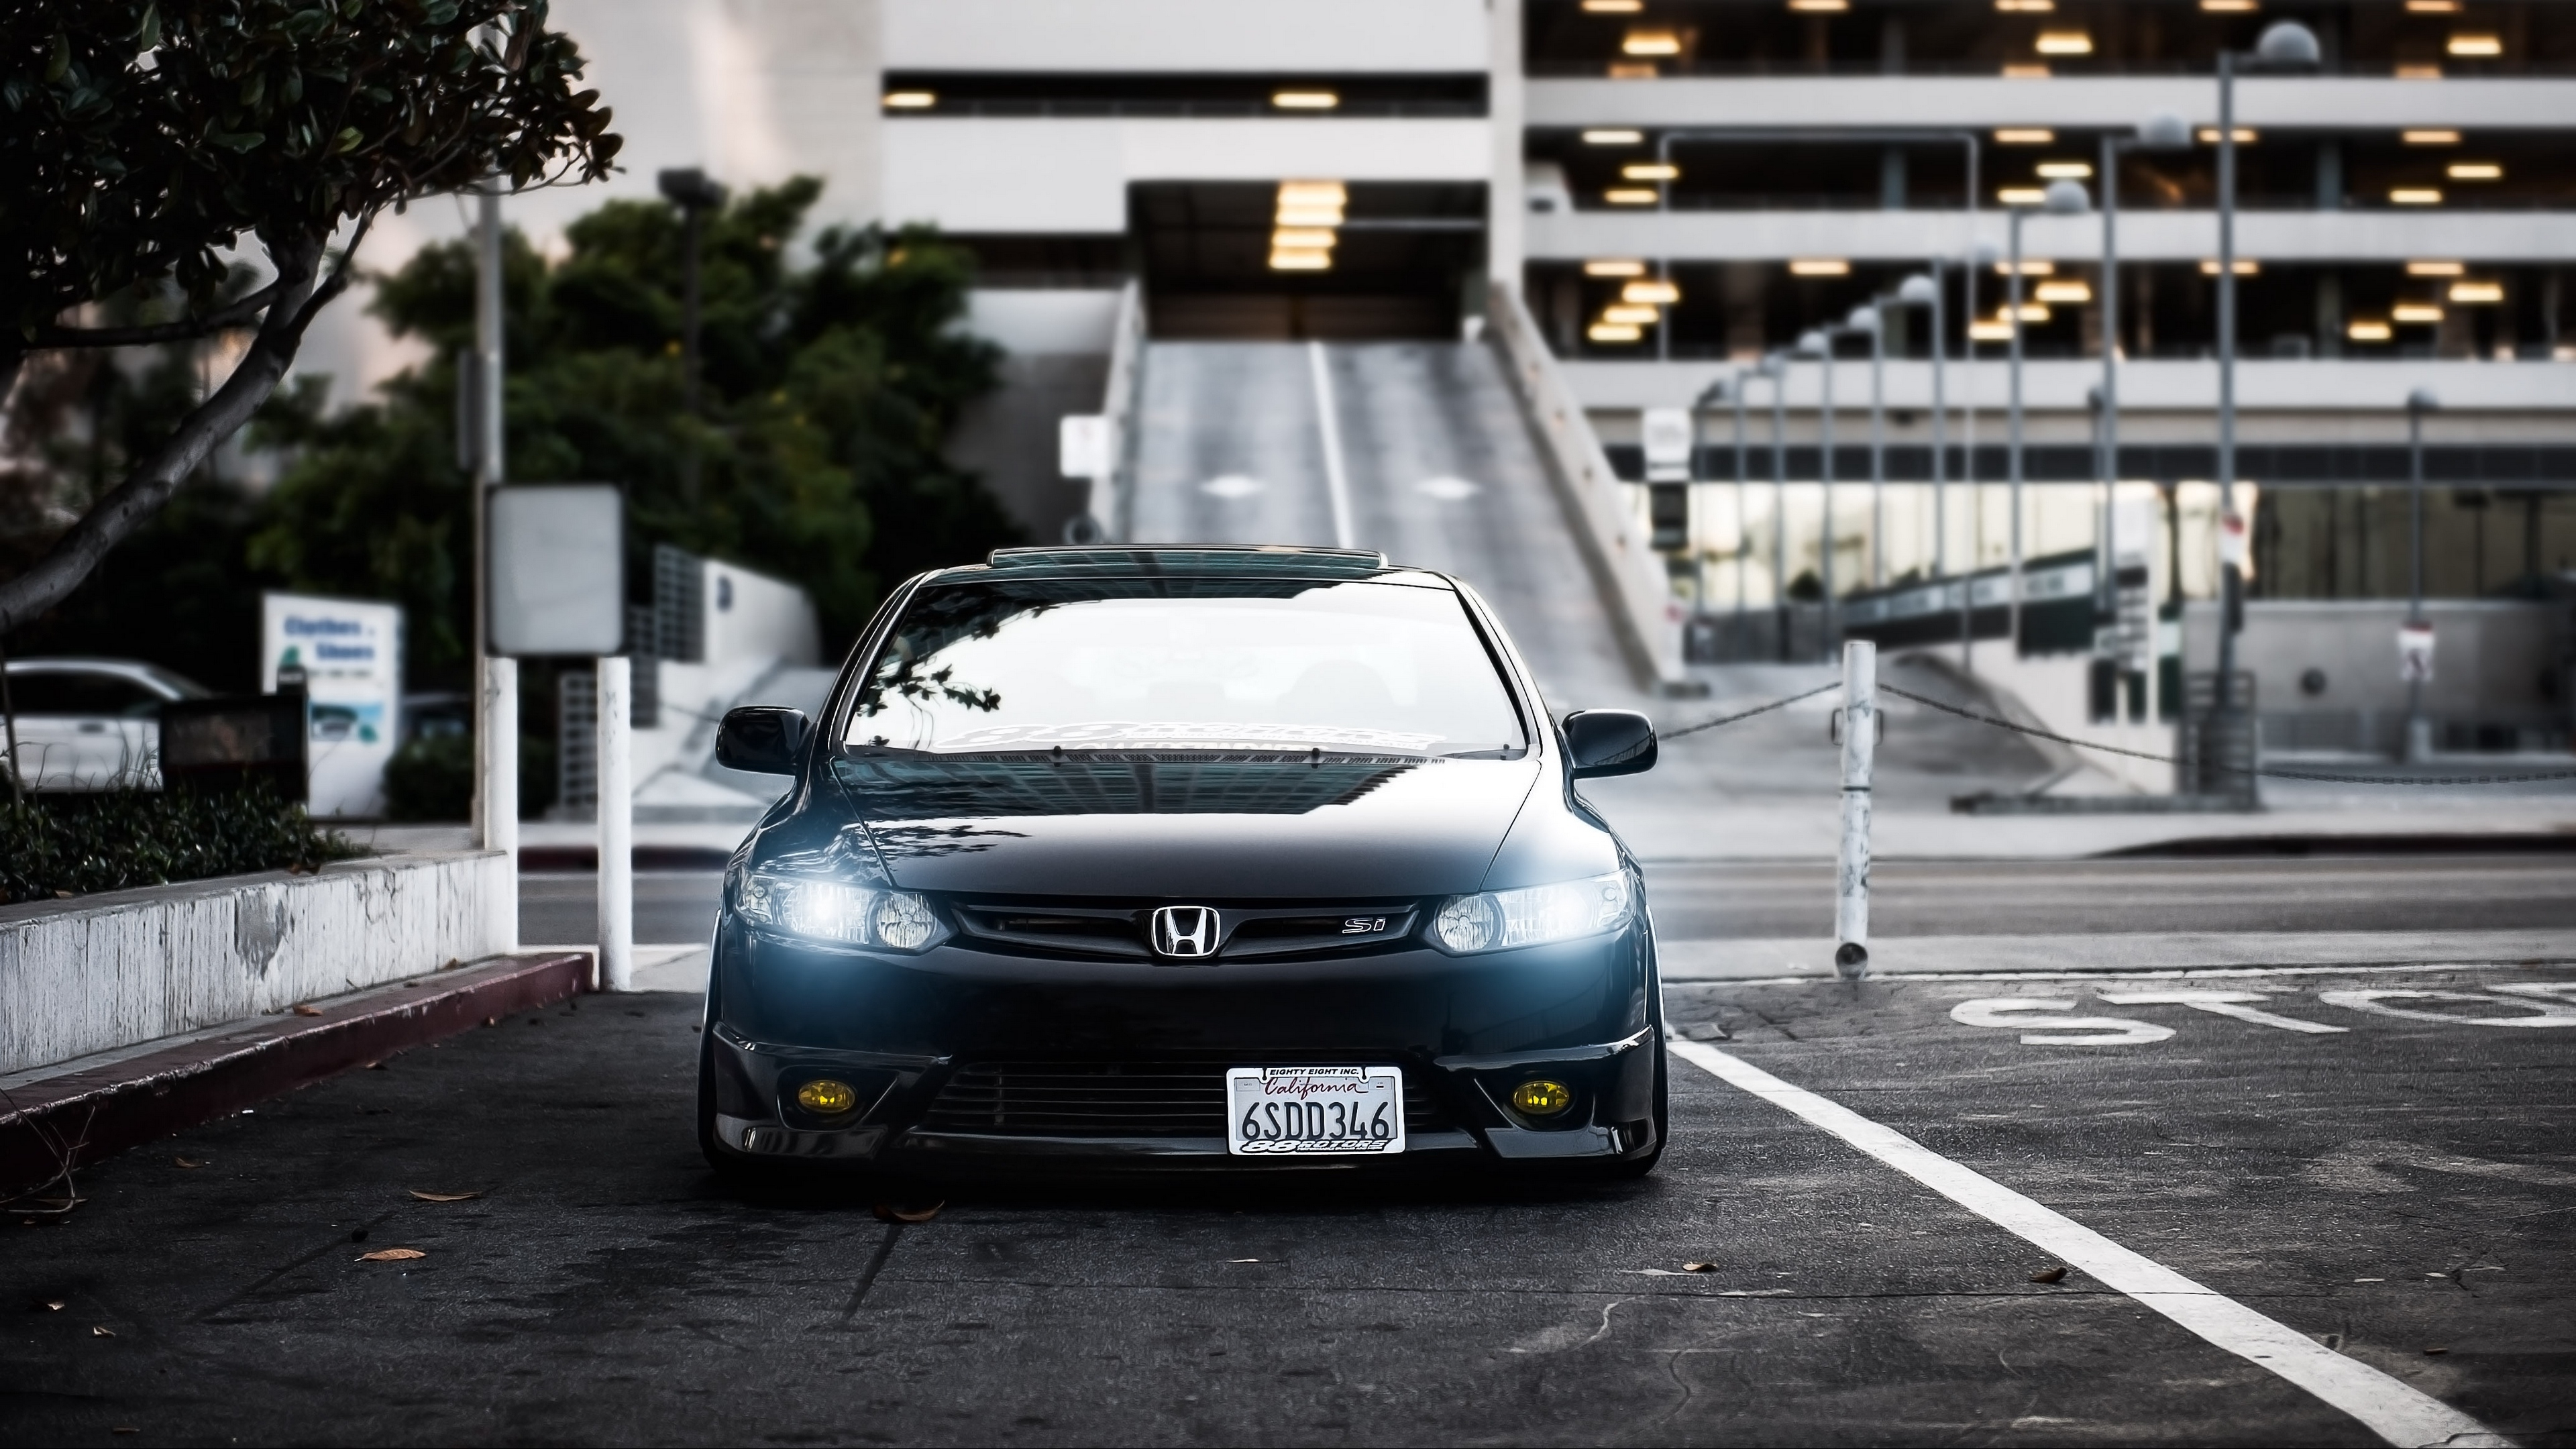 download wallpaper 3840x2160 honda, civic, si, black, front view